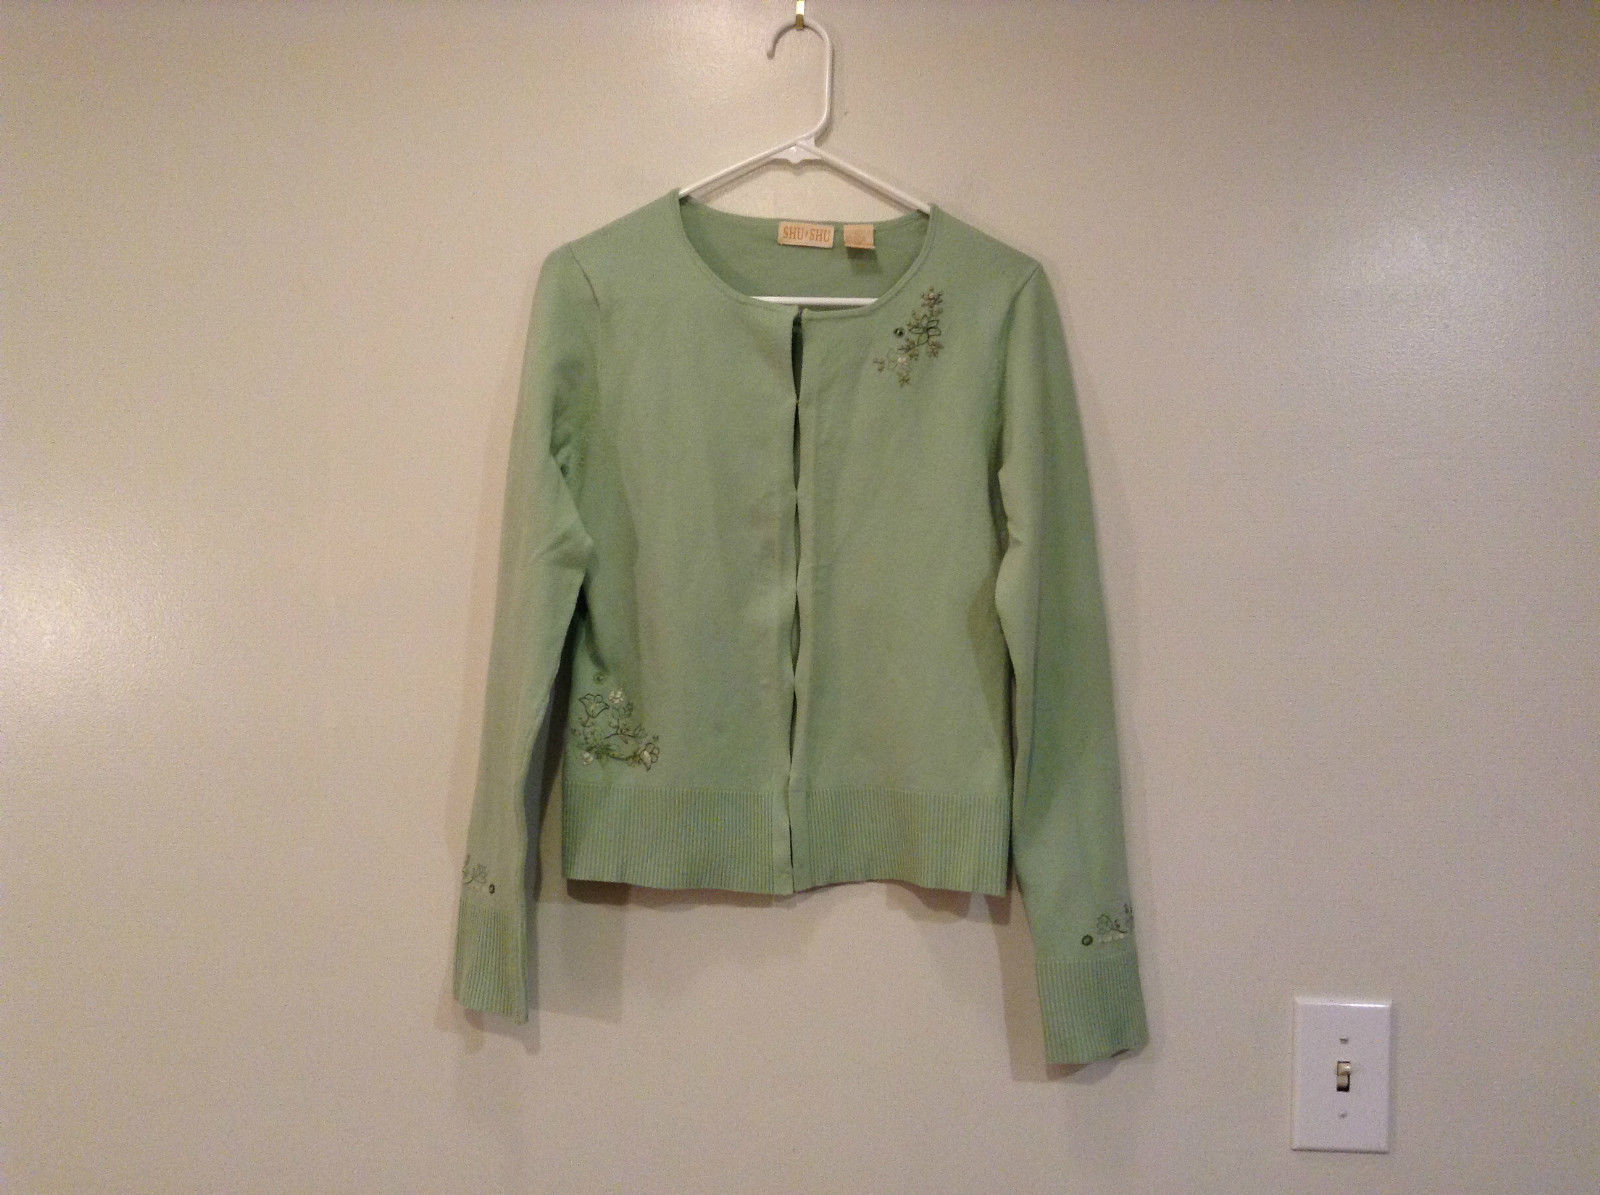 Shu and Shu Light Green with Embroidery Sweater Size L Hook and Eye Closure